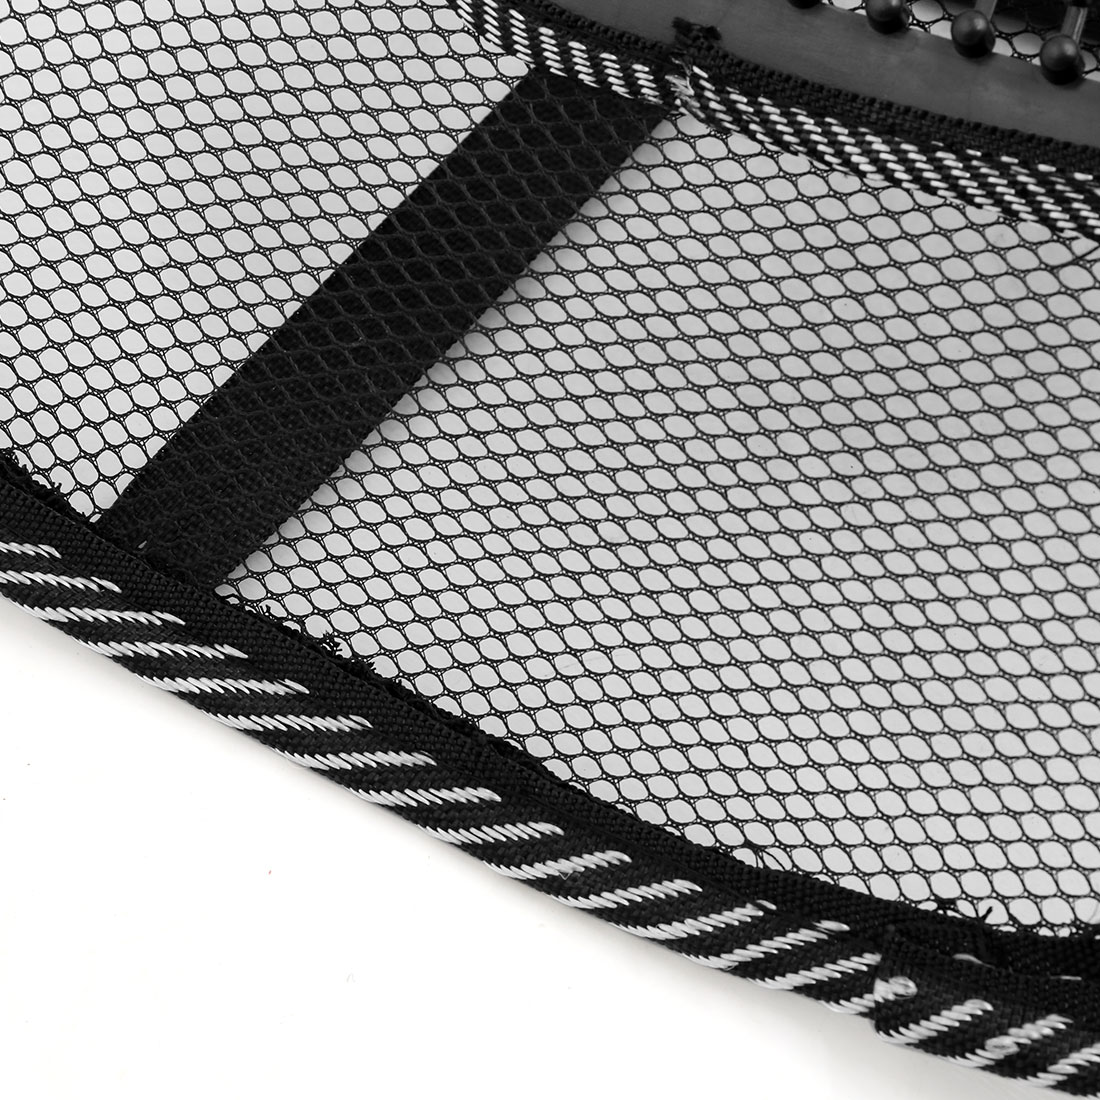 Black White Waist Lumbar Massage Mesh Cushion Back Support Pad for Car Office - image 2 of 5